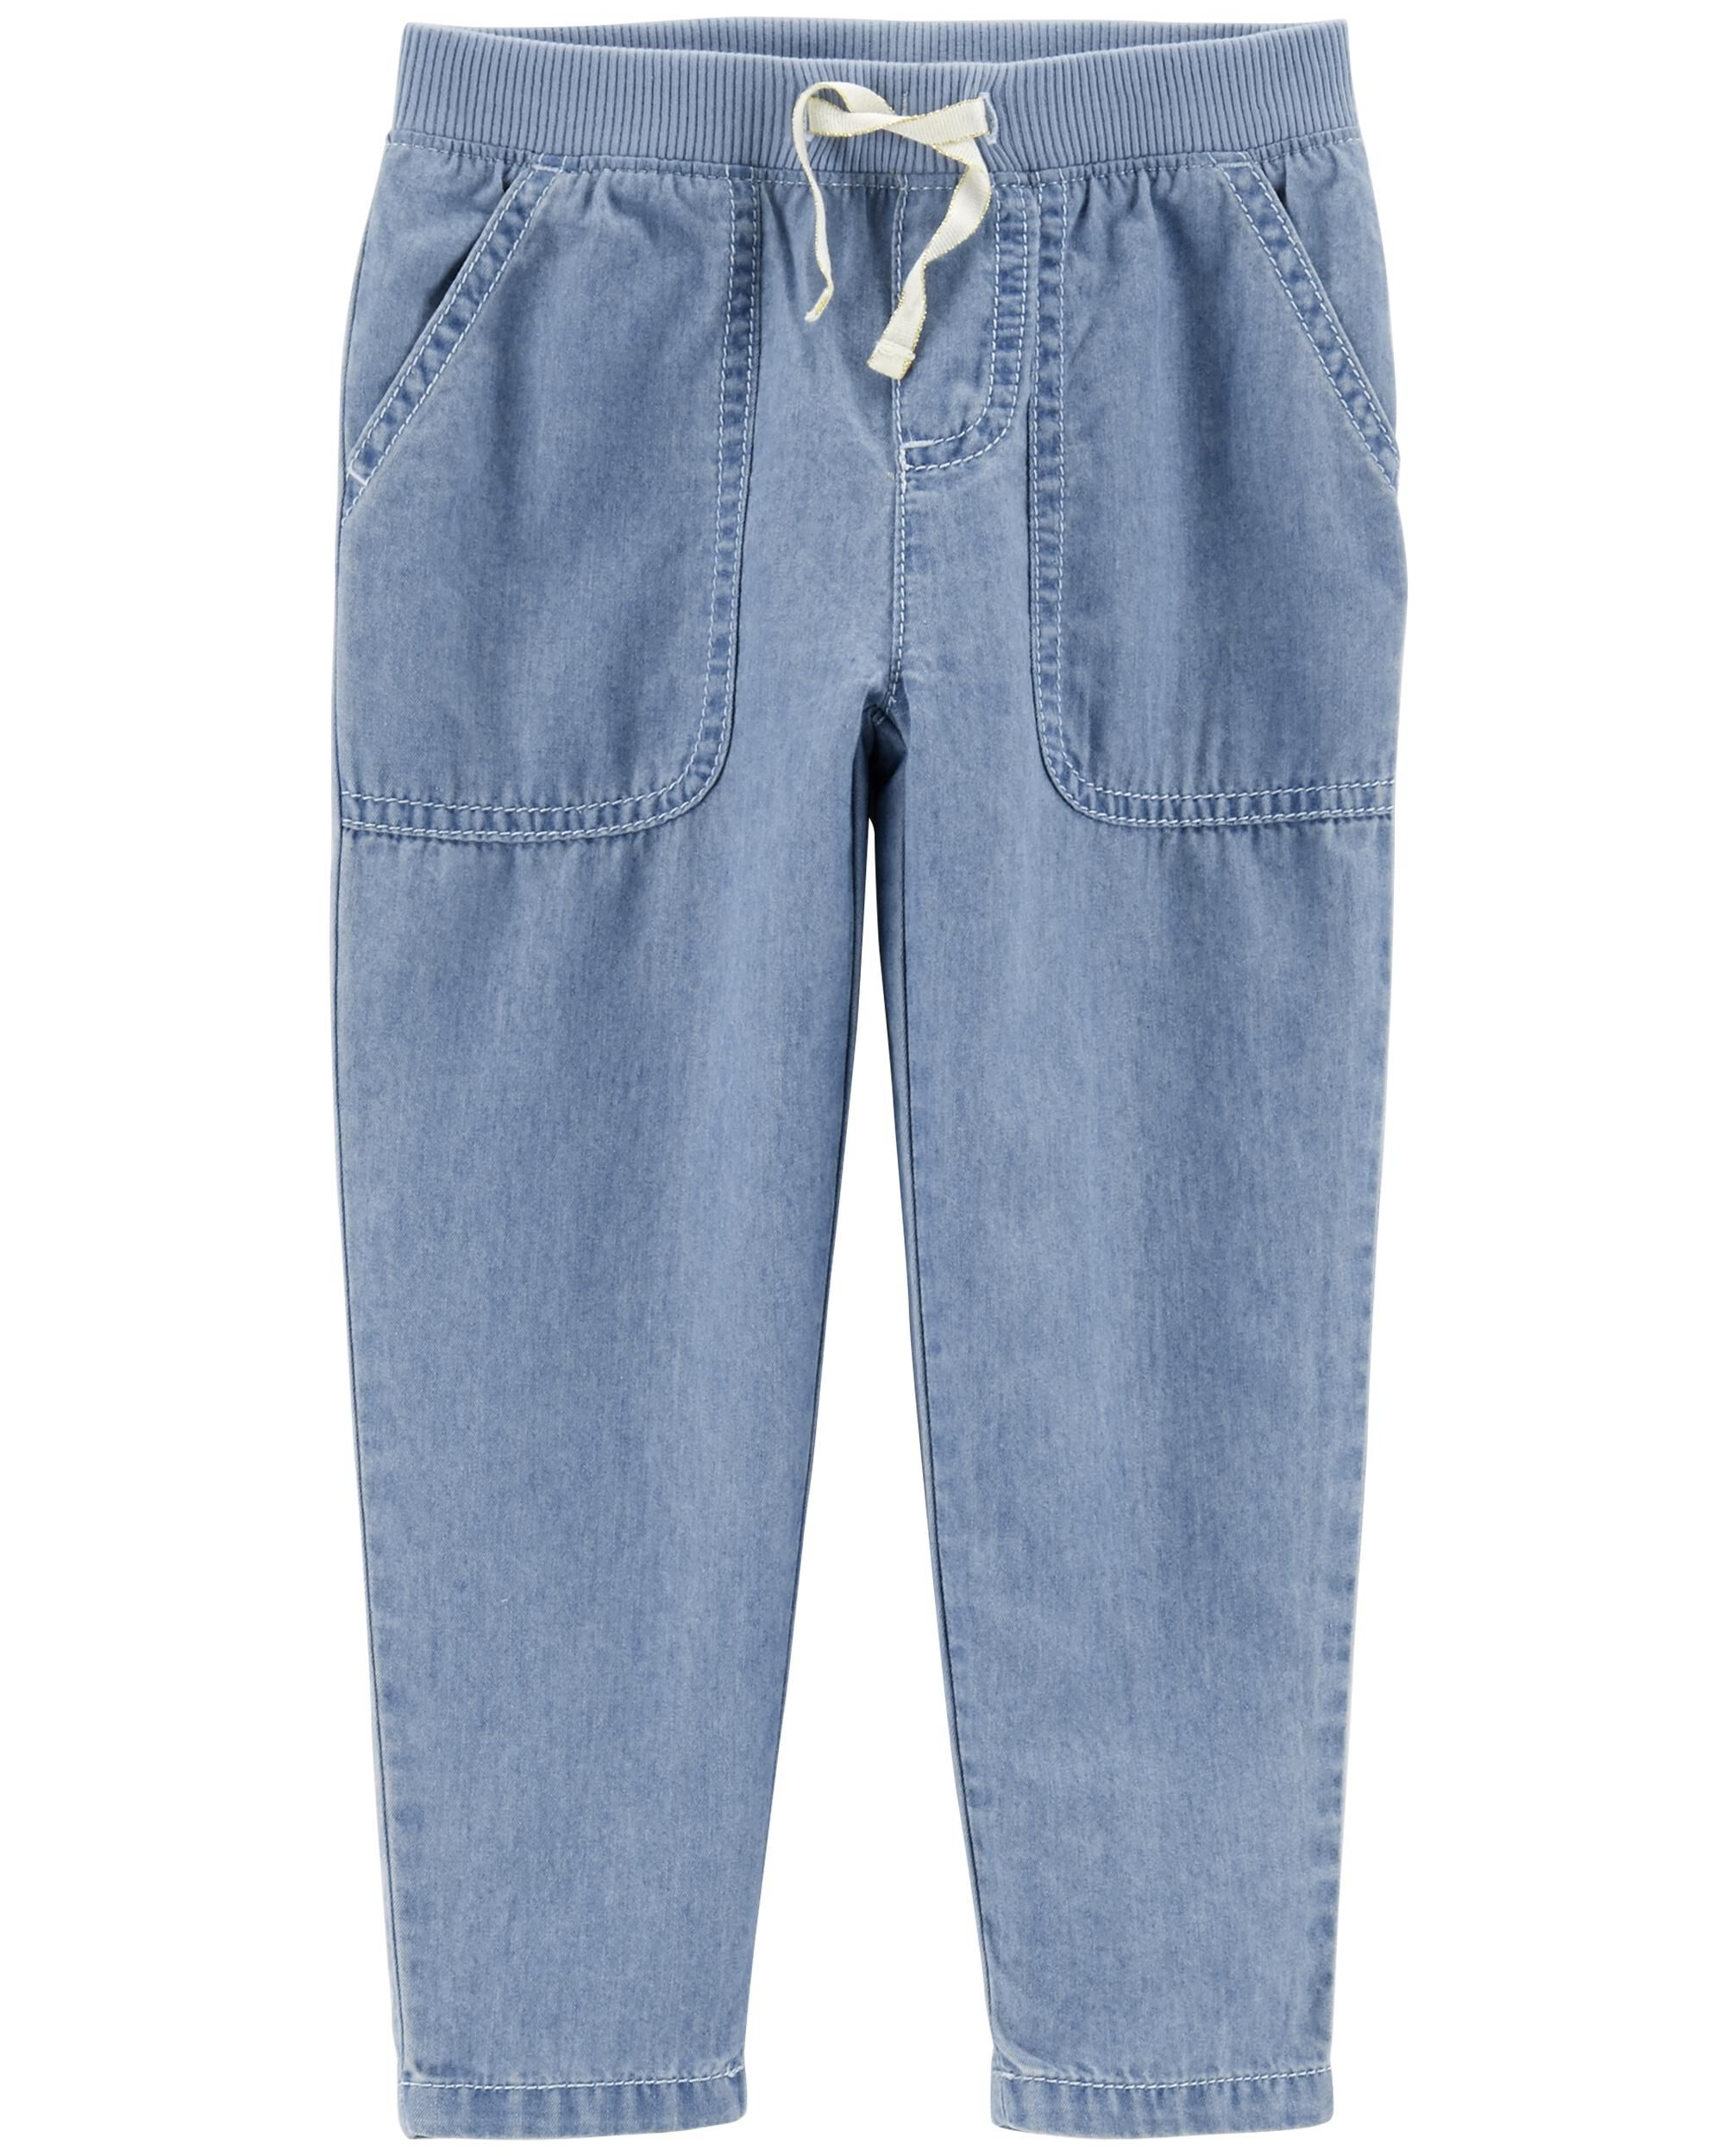 093559acc Pull-On Relaxed Fit Denim Pants | Carters.com